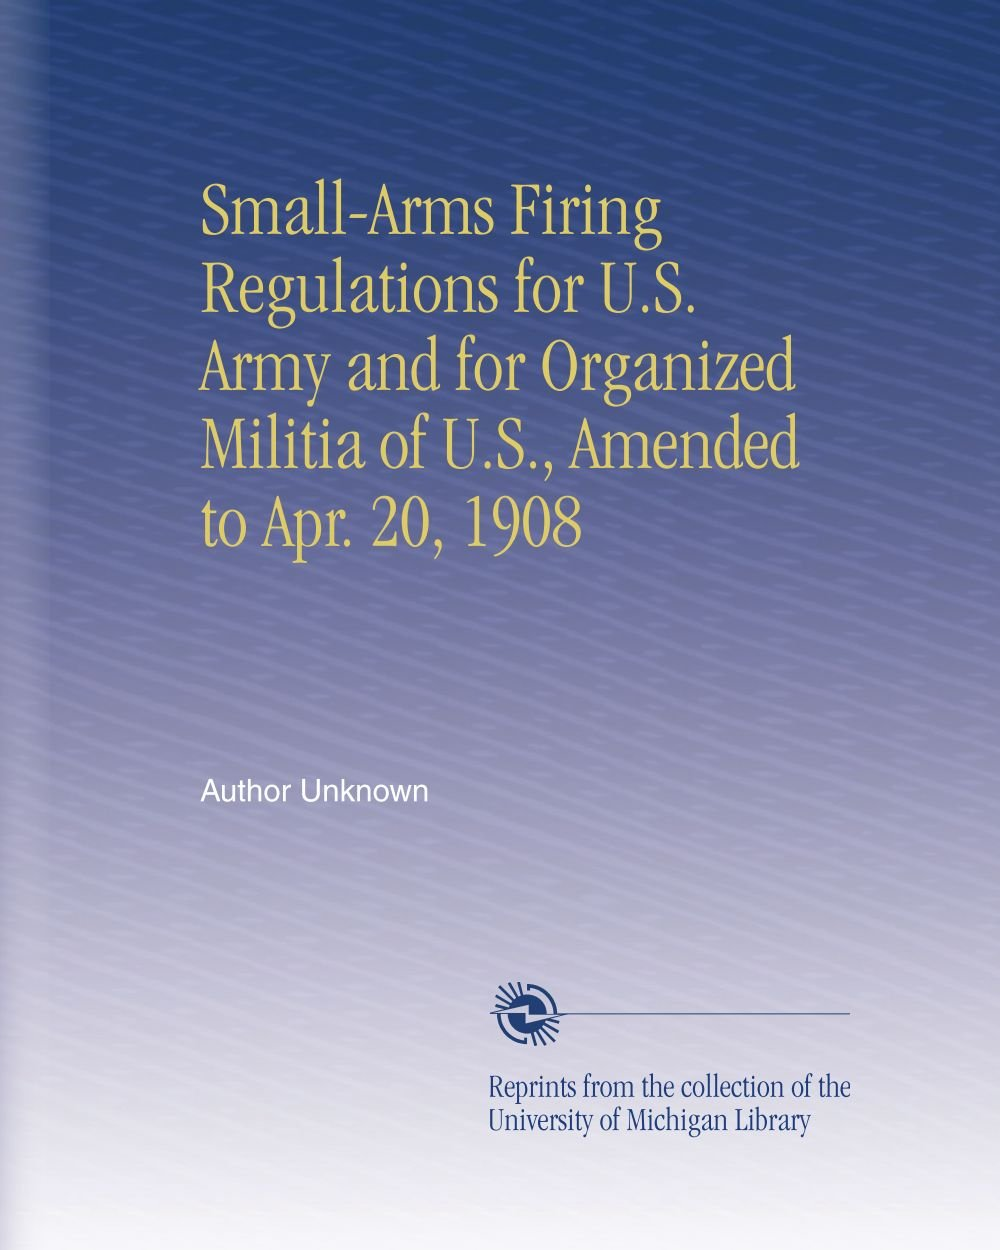 Download Small-Arms Firing Regulations for U.S. Army and for Organized Militia of U.S., Amended to Apr. 20, 1908 pdf epub